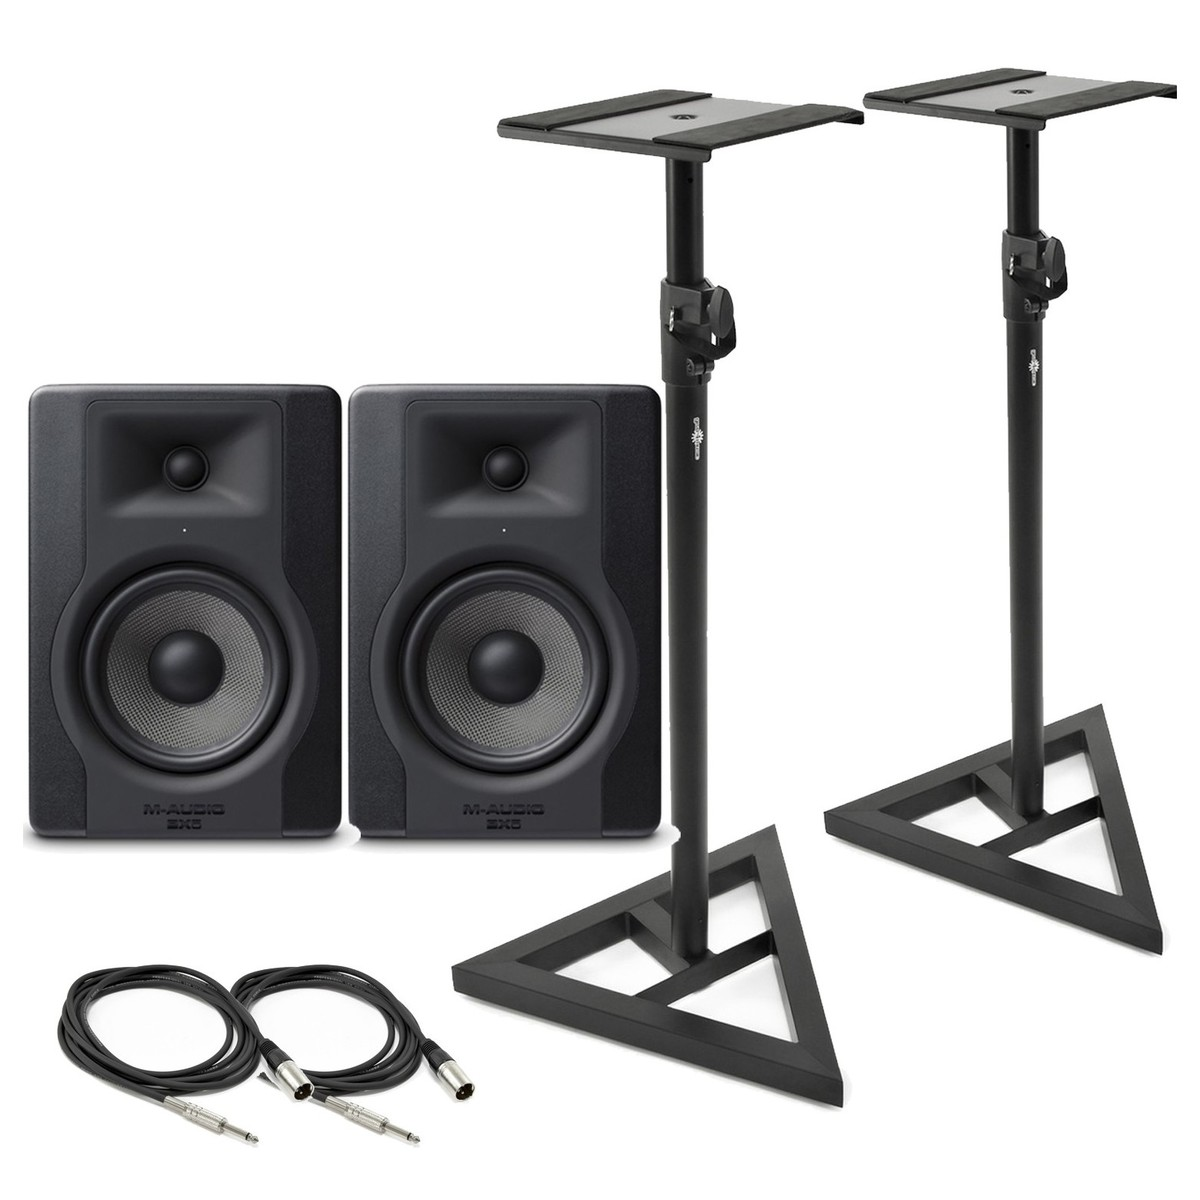 Cheap M-Audio BX5-D3 Monitor Pair with Stands & Cables